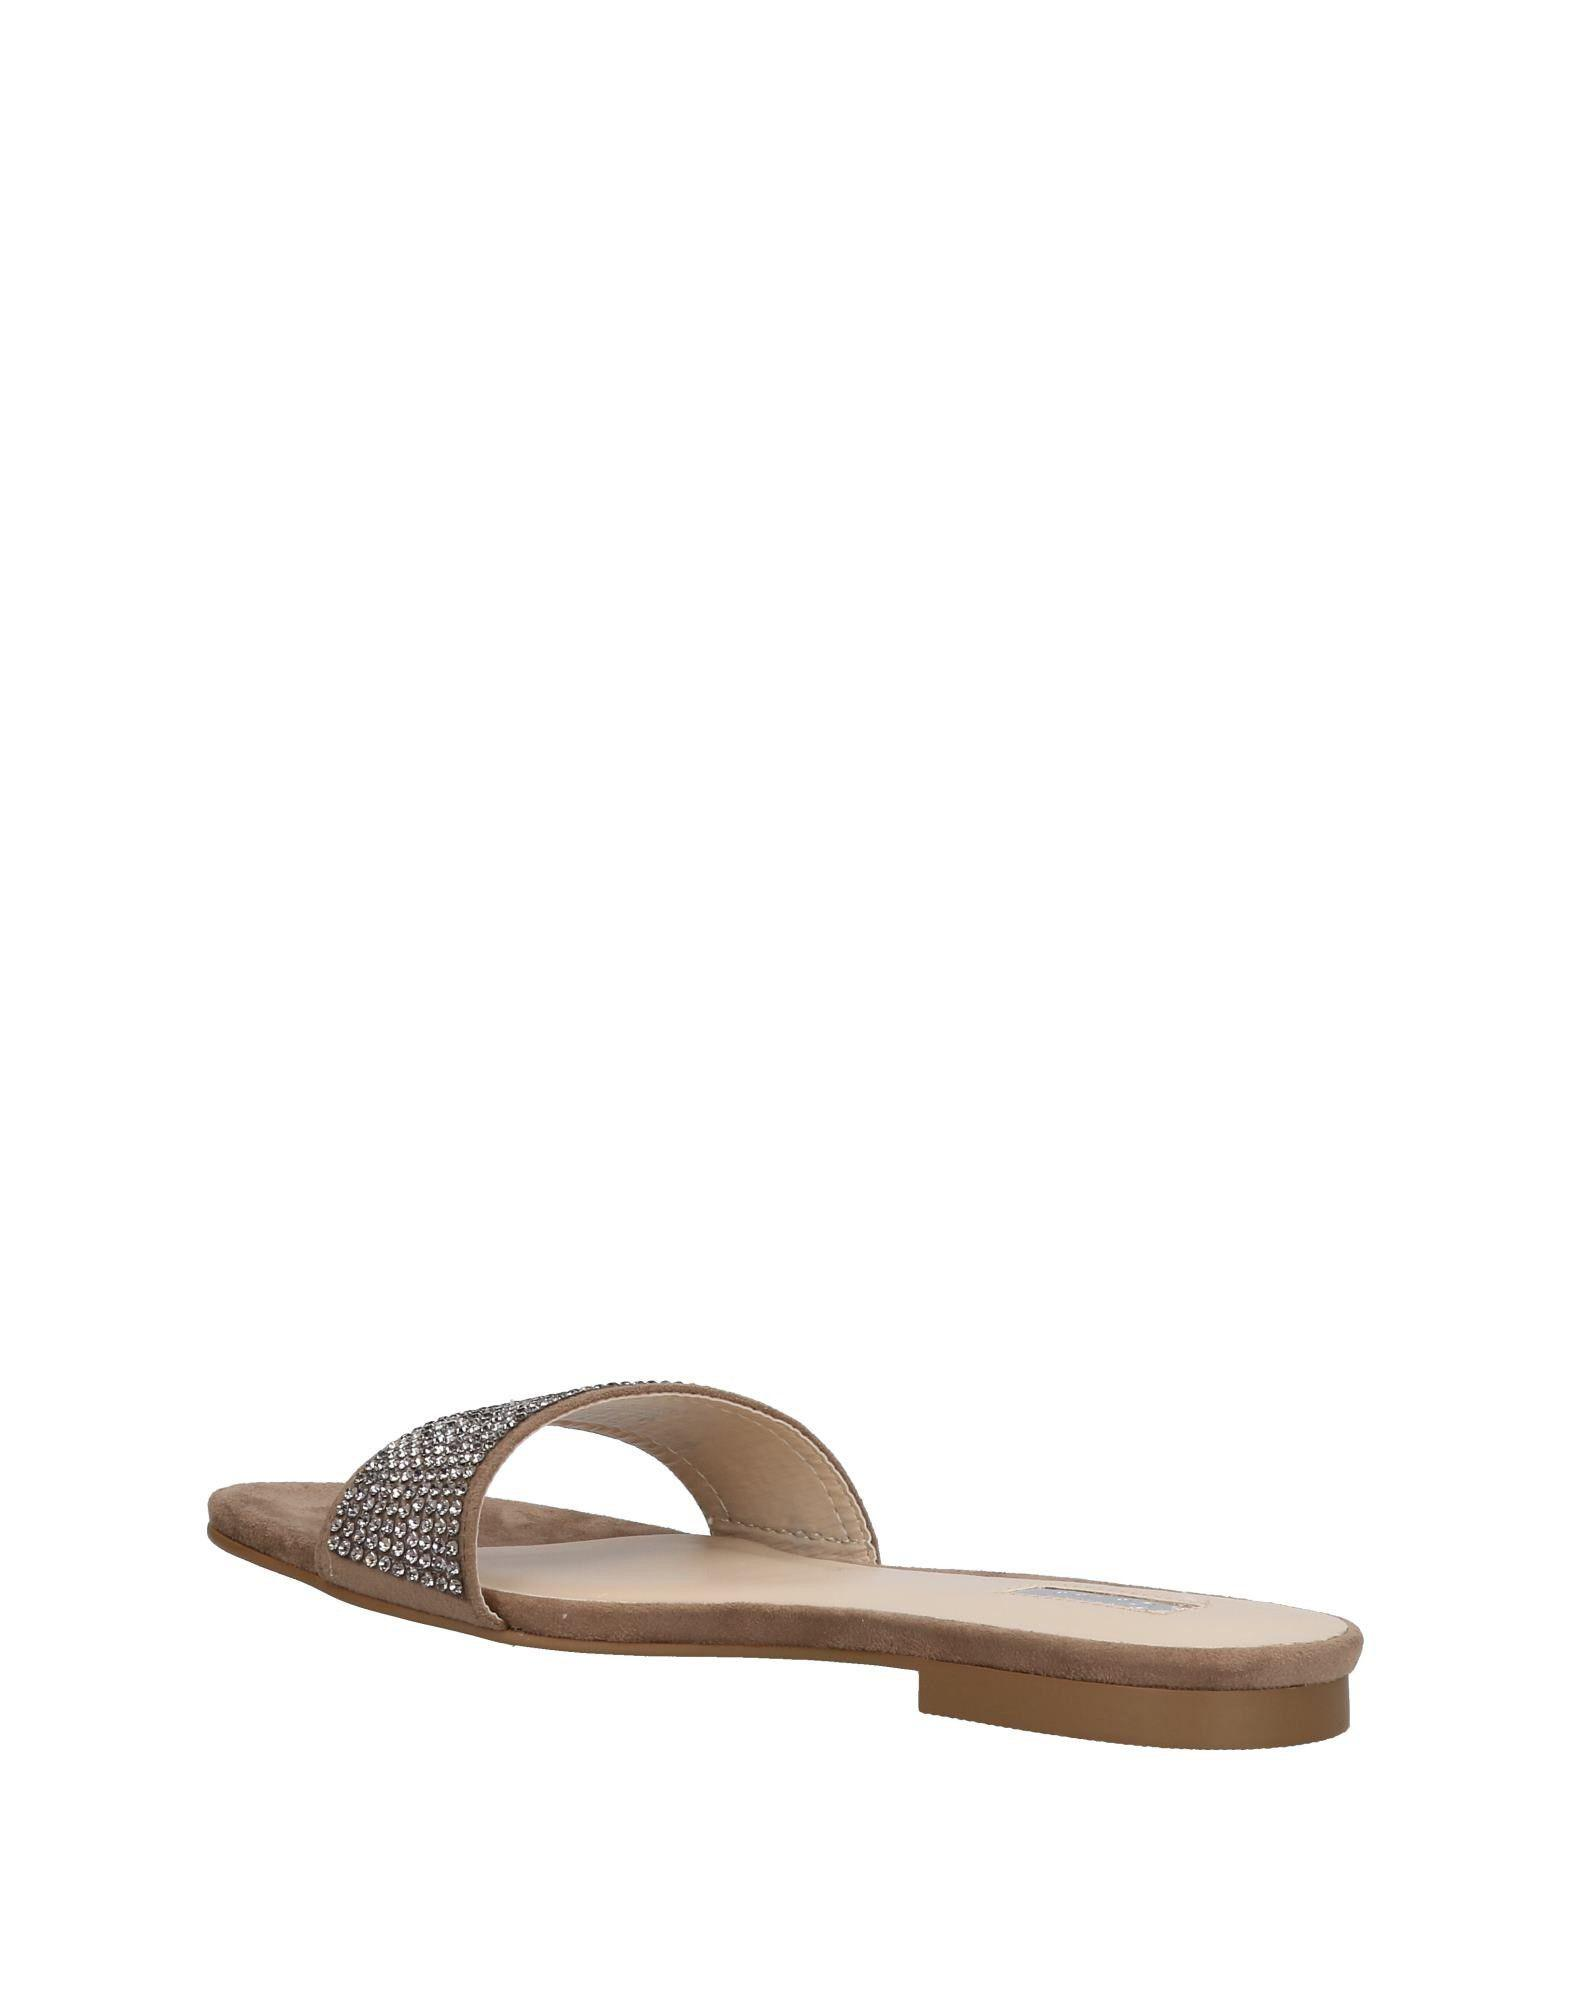 09d6ded3a808 Lyst - Guess Sandals